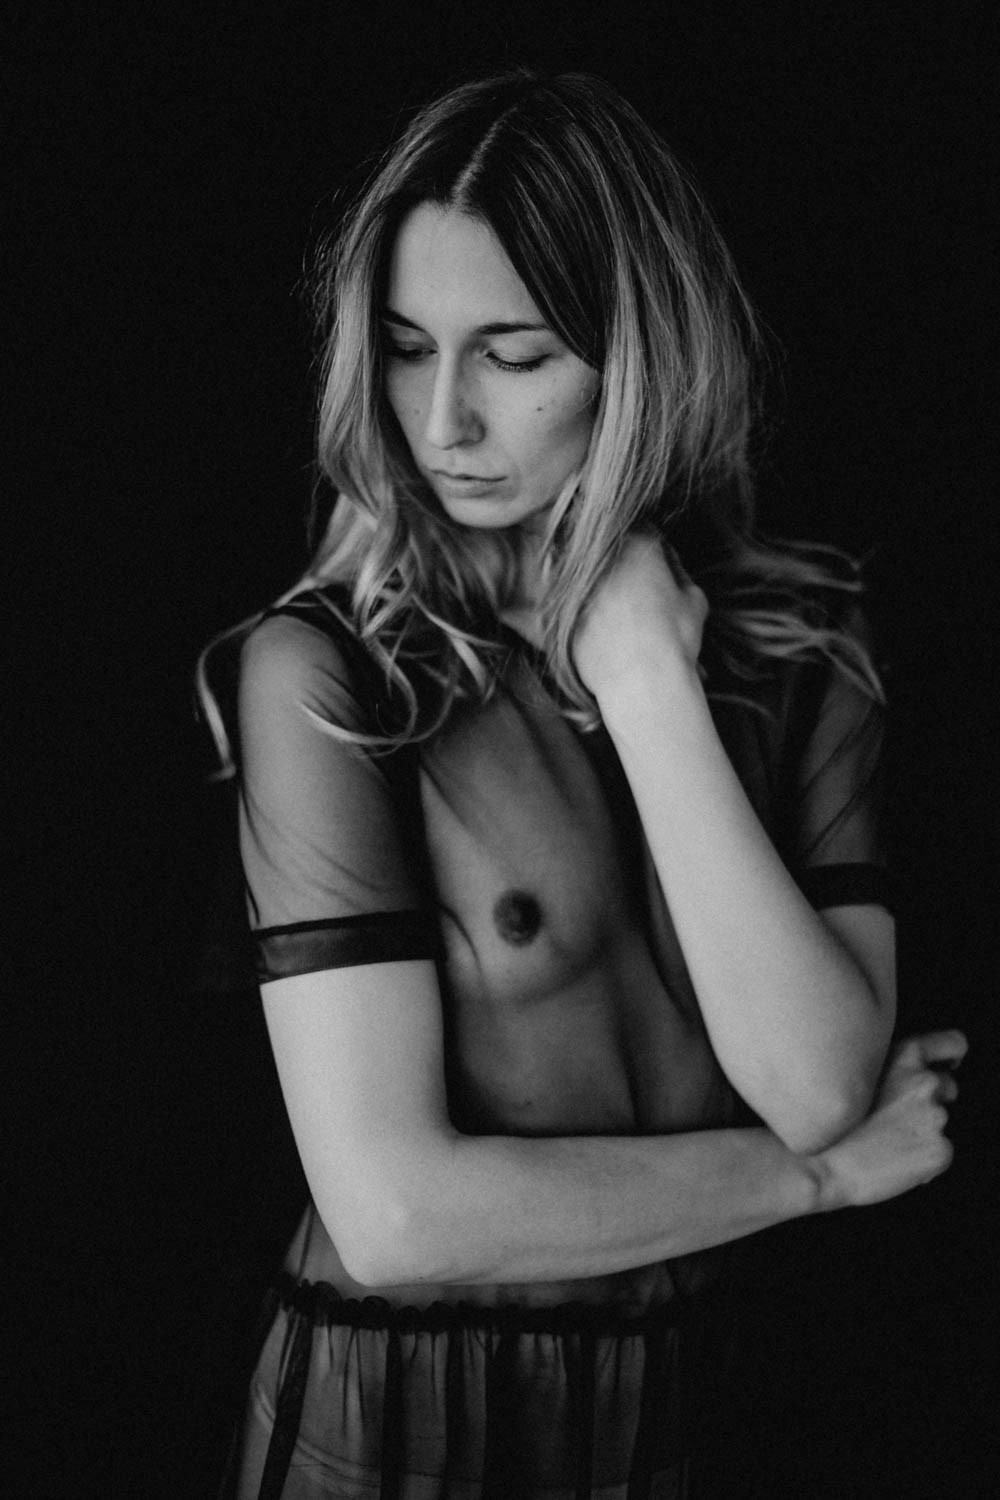 portrait-shooting-nude-black-and-white